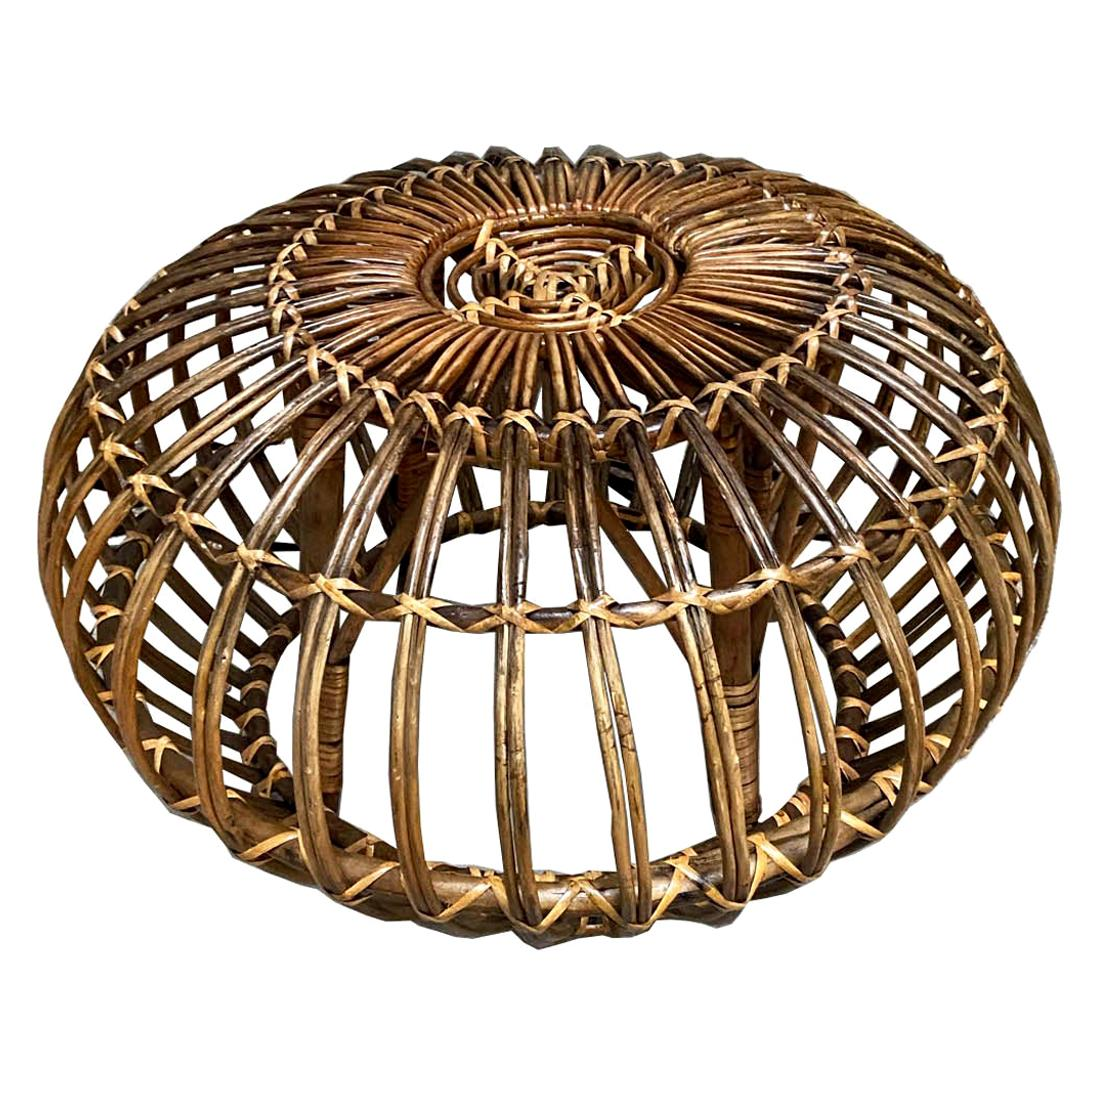 Franco Albini Attributed Handwoven Rattan / Wicker Ottoman, Italy, 1960s